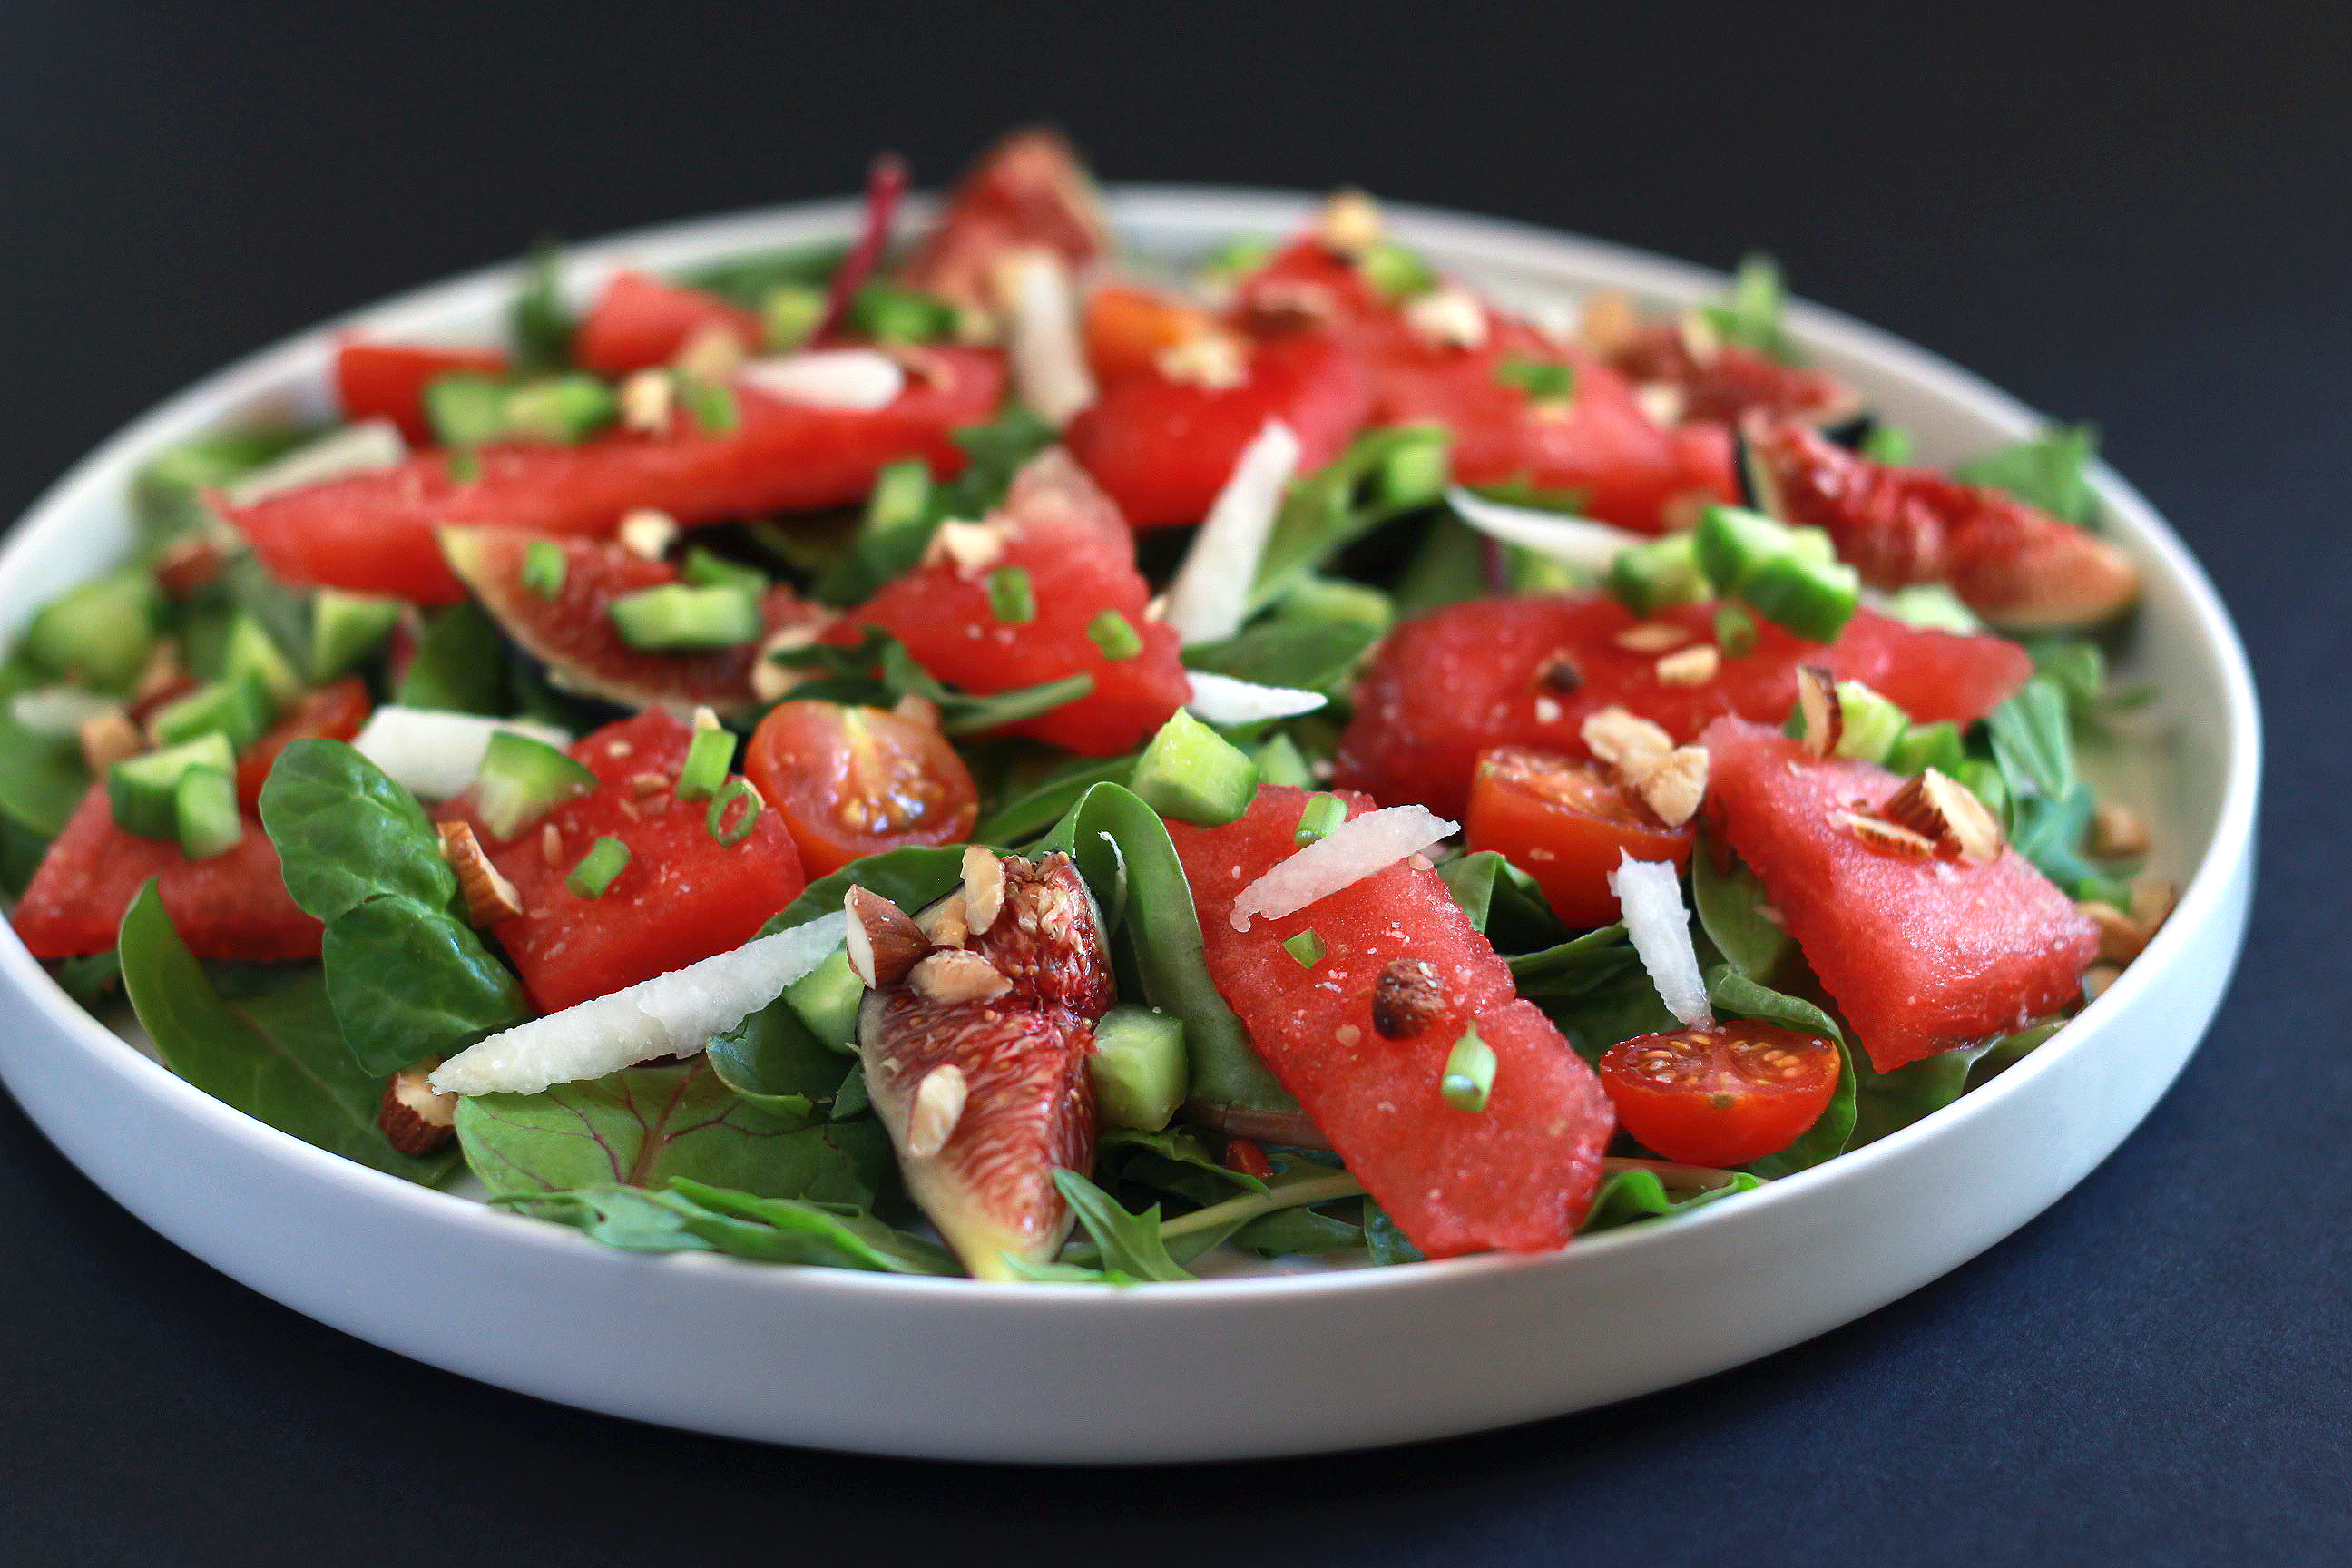 Easy Paleo Watermelon Salad with Roasted Almonds & Fig Balsamic Dressing